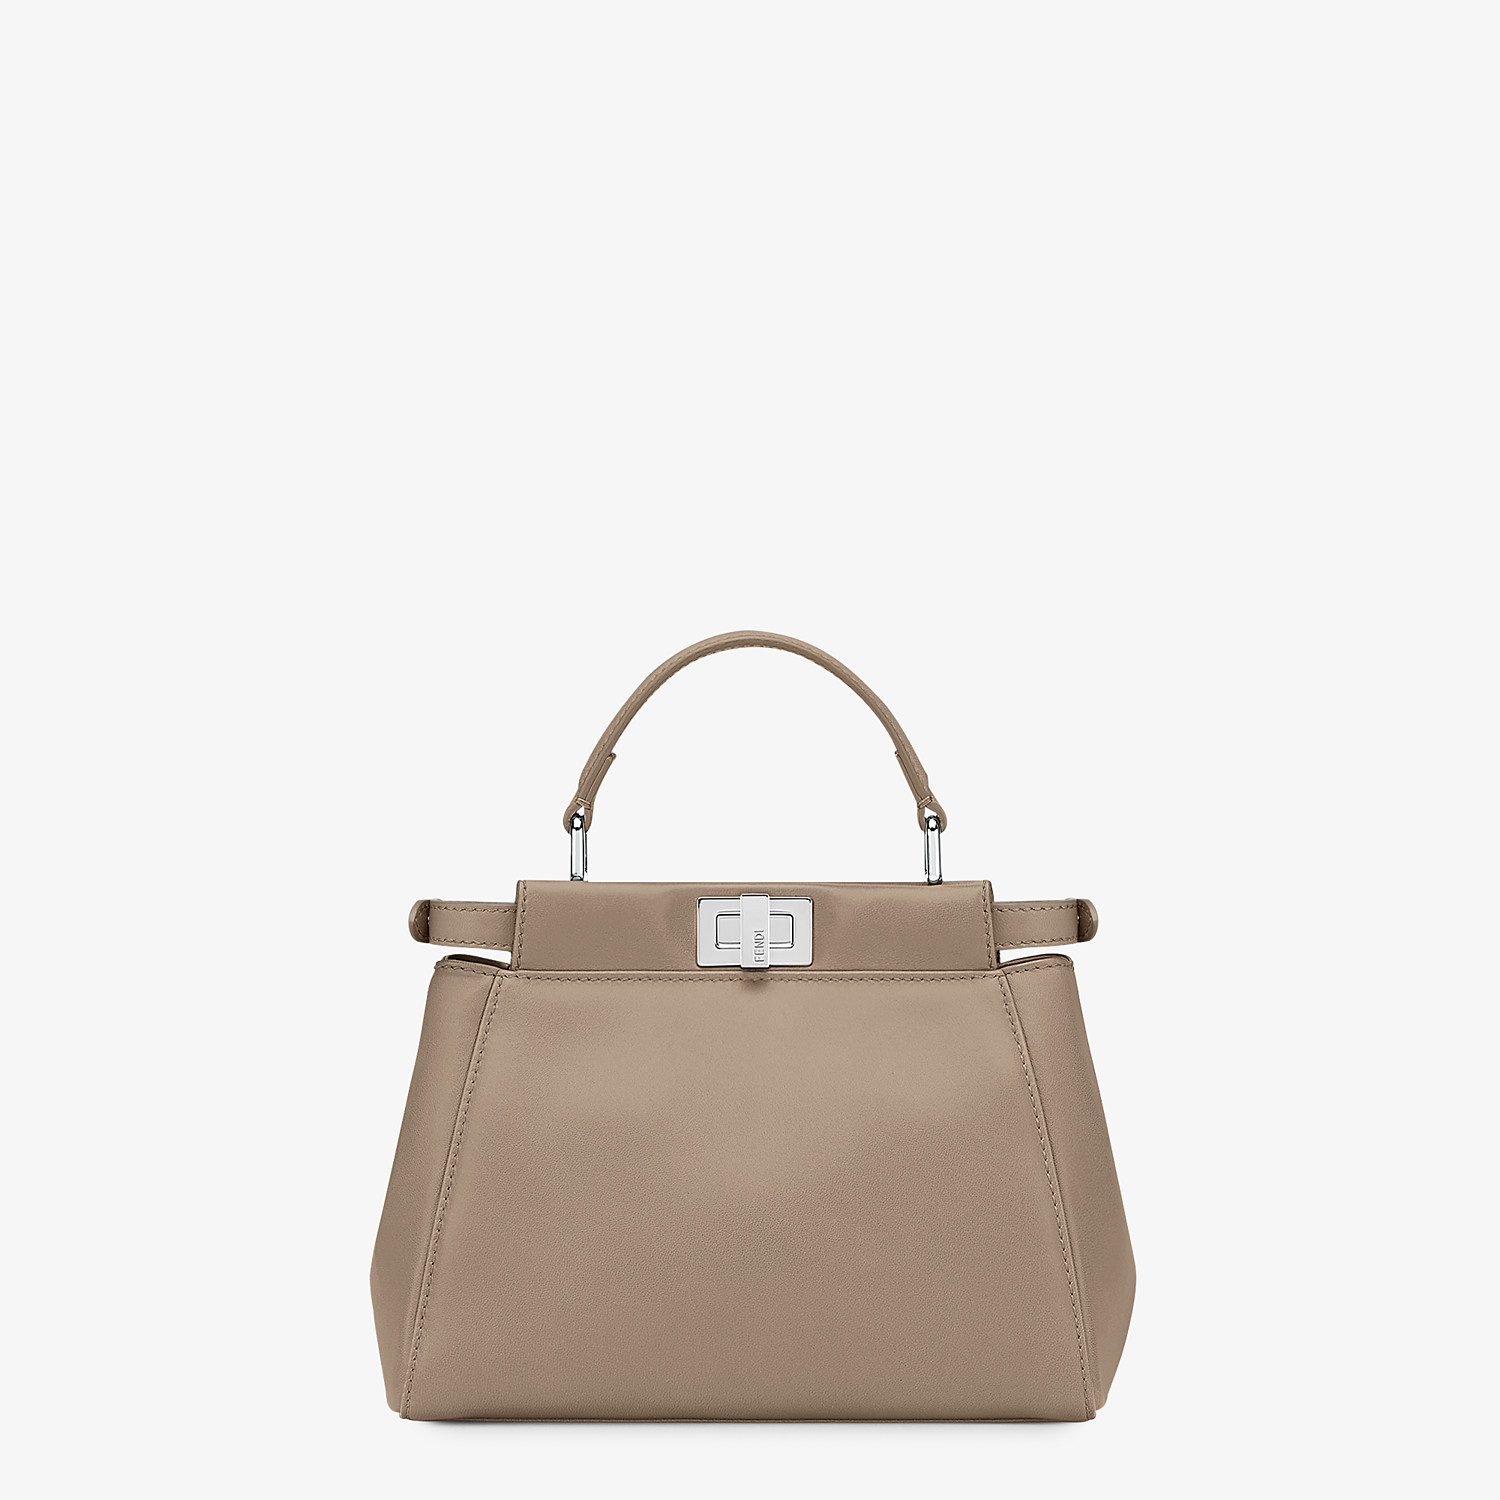 FENDI PEEKABOO ICONIC MINI - Dove grey leather hand bag - view 4 detail